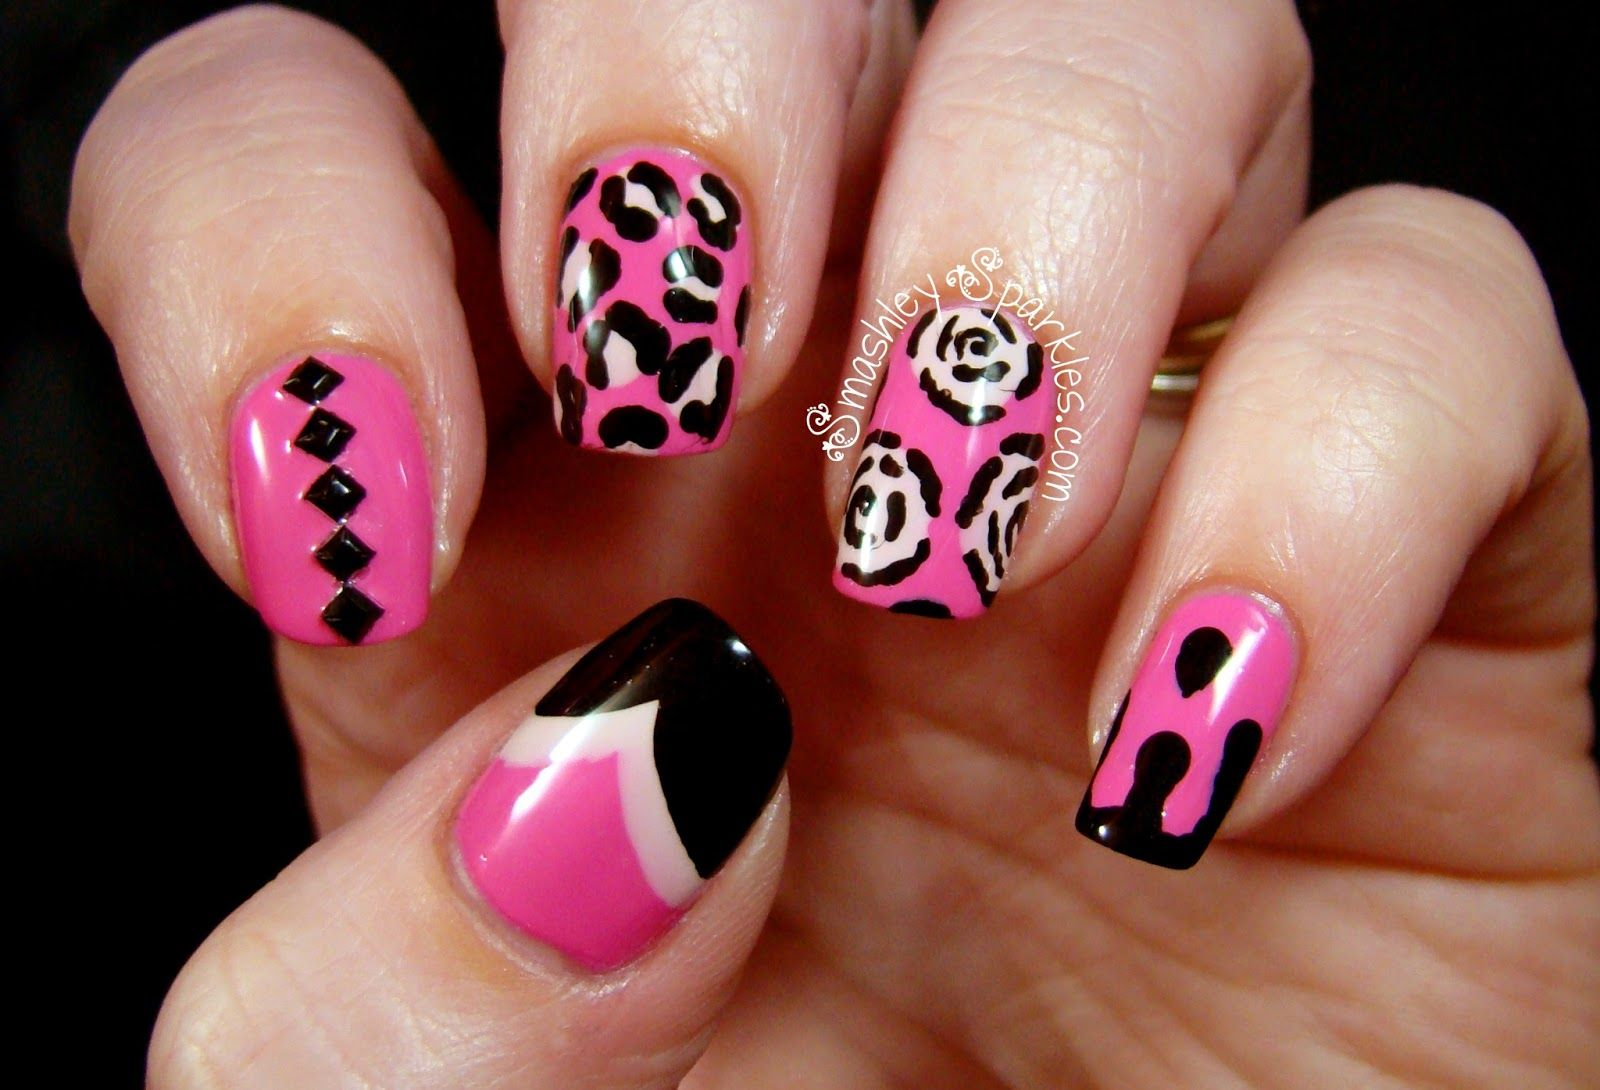 Cute Easy Nail Designs | Black and white nail art | Pinterest | Pink ...